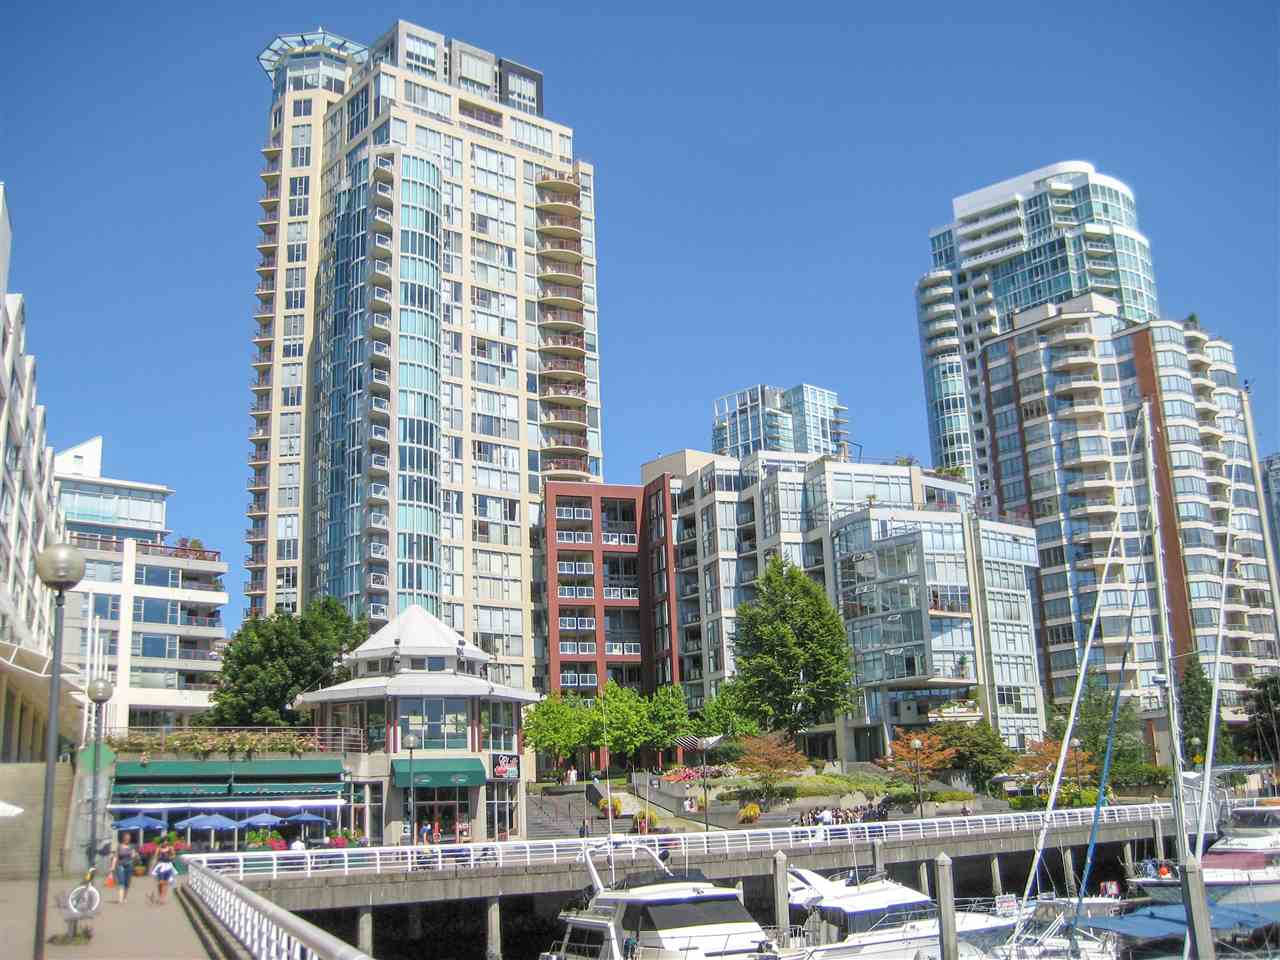 Main Photo: 2101 1000 BEACH AVENUE in Vancouver: Yaletown Condo for sale (Vancouver West)  : MLS®# R2248536